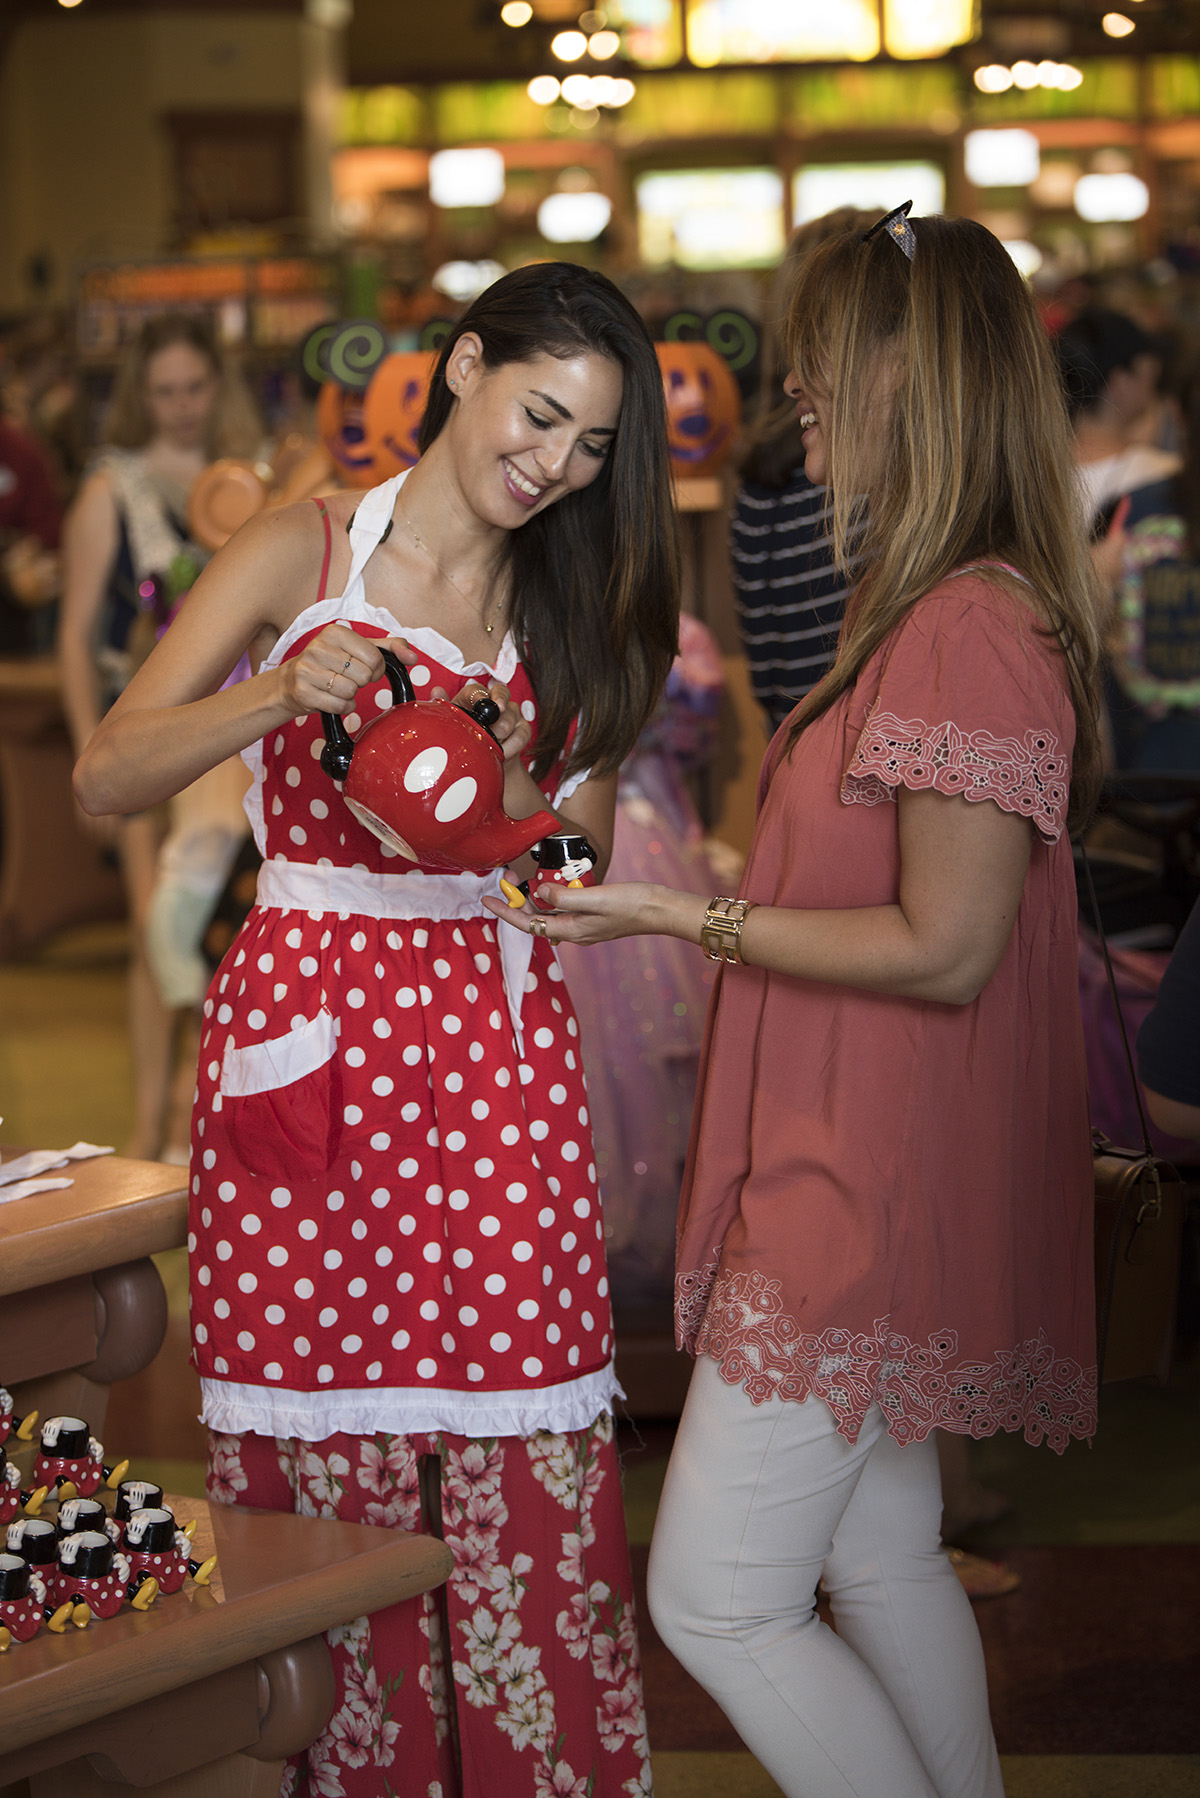 CANDY TESTING OUT THE MINNIE APRON